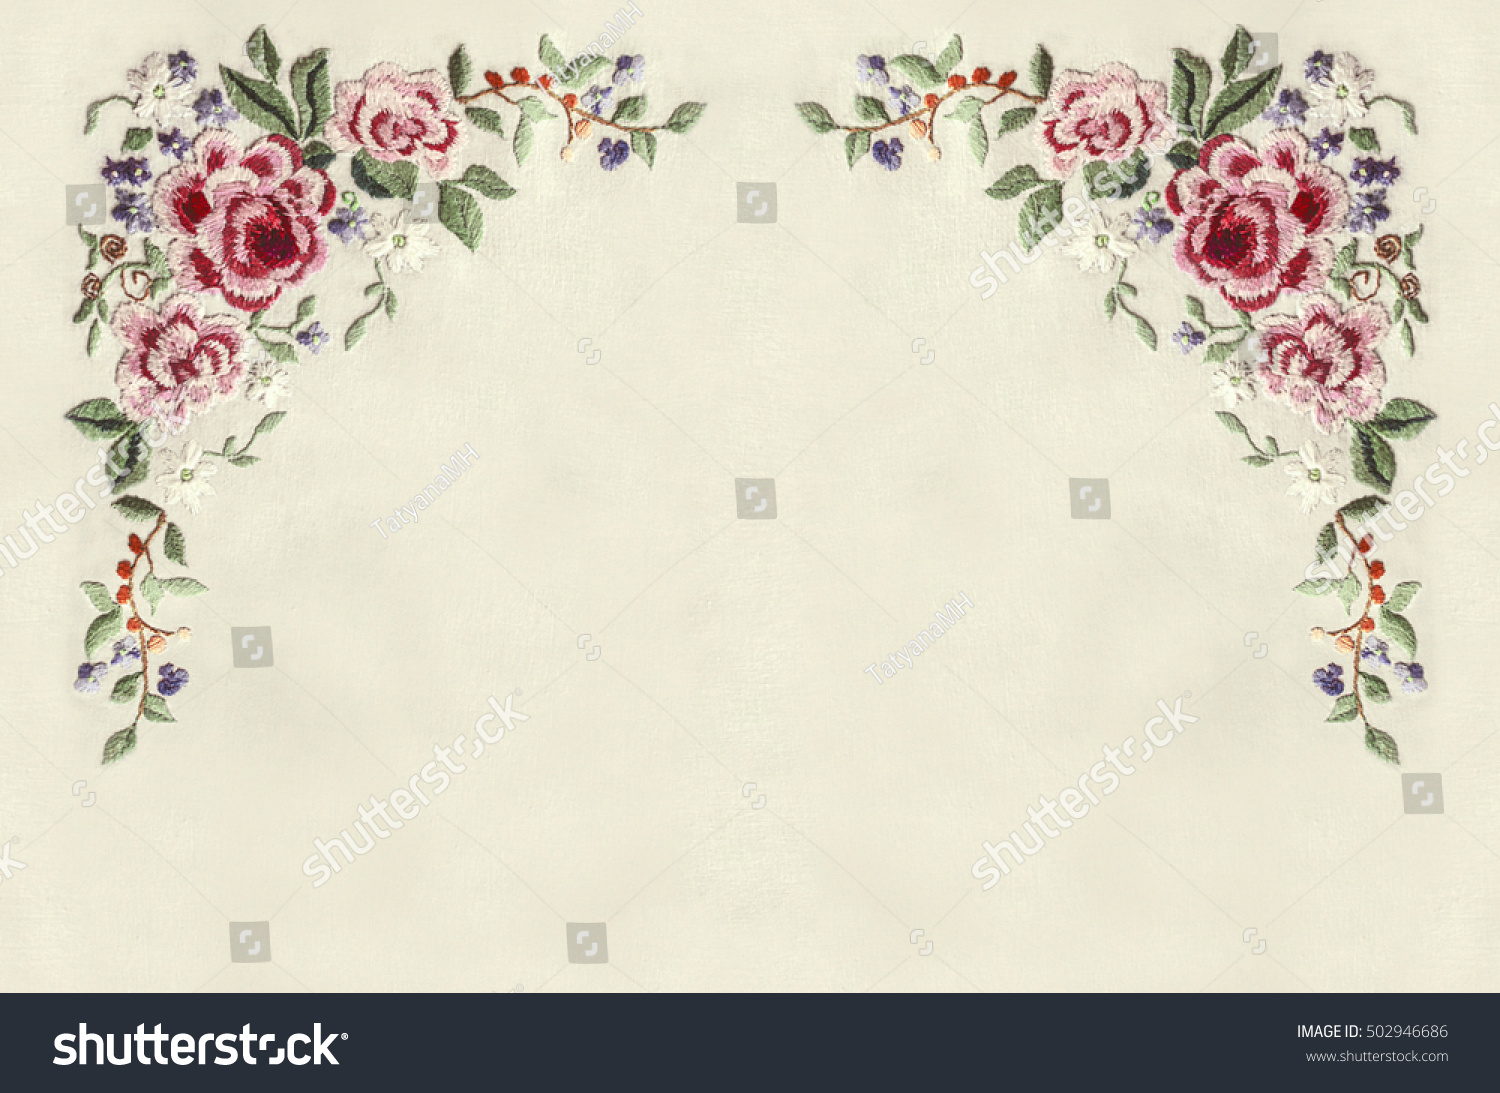 Edge corners embroidery roses small flowers stock photo